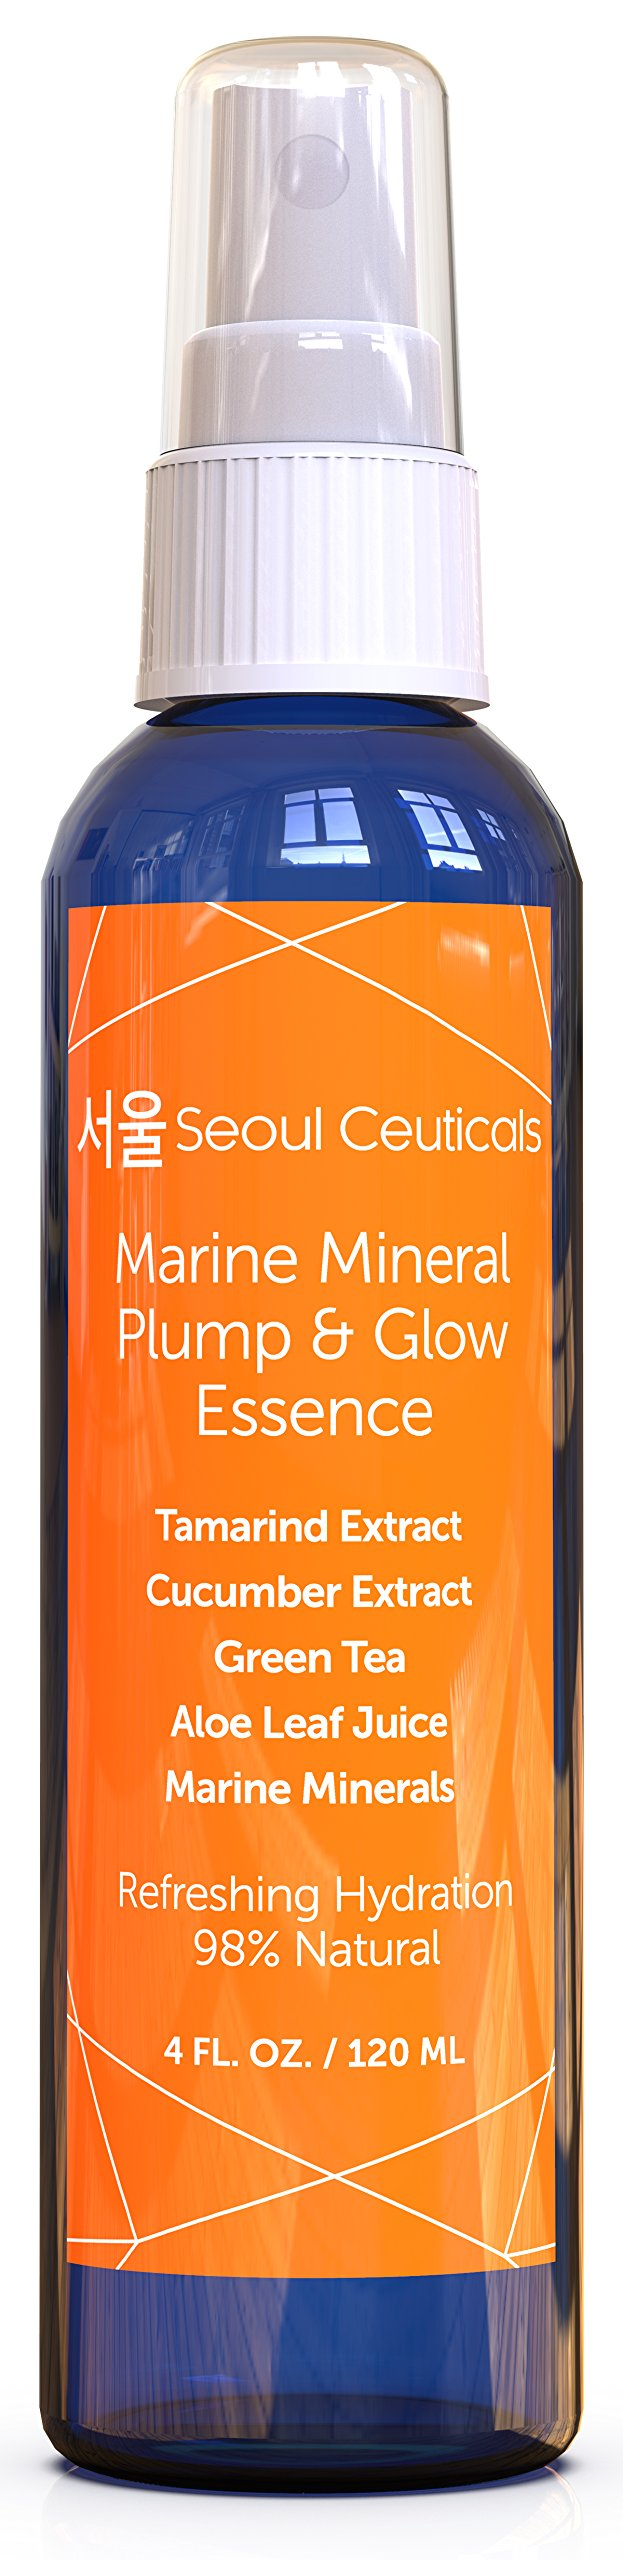 Essence Korean Skin Care - This Facial Essence Is A Must For An Effective Korean Beauty Routine - Contains Japanese Green Tea, Aloe, Cucumber, Marine Minerals & Tamarind Extract For That Youthful Glow by SeoulCeuticals